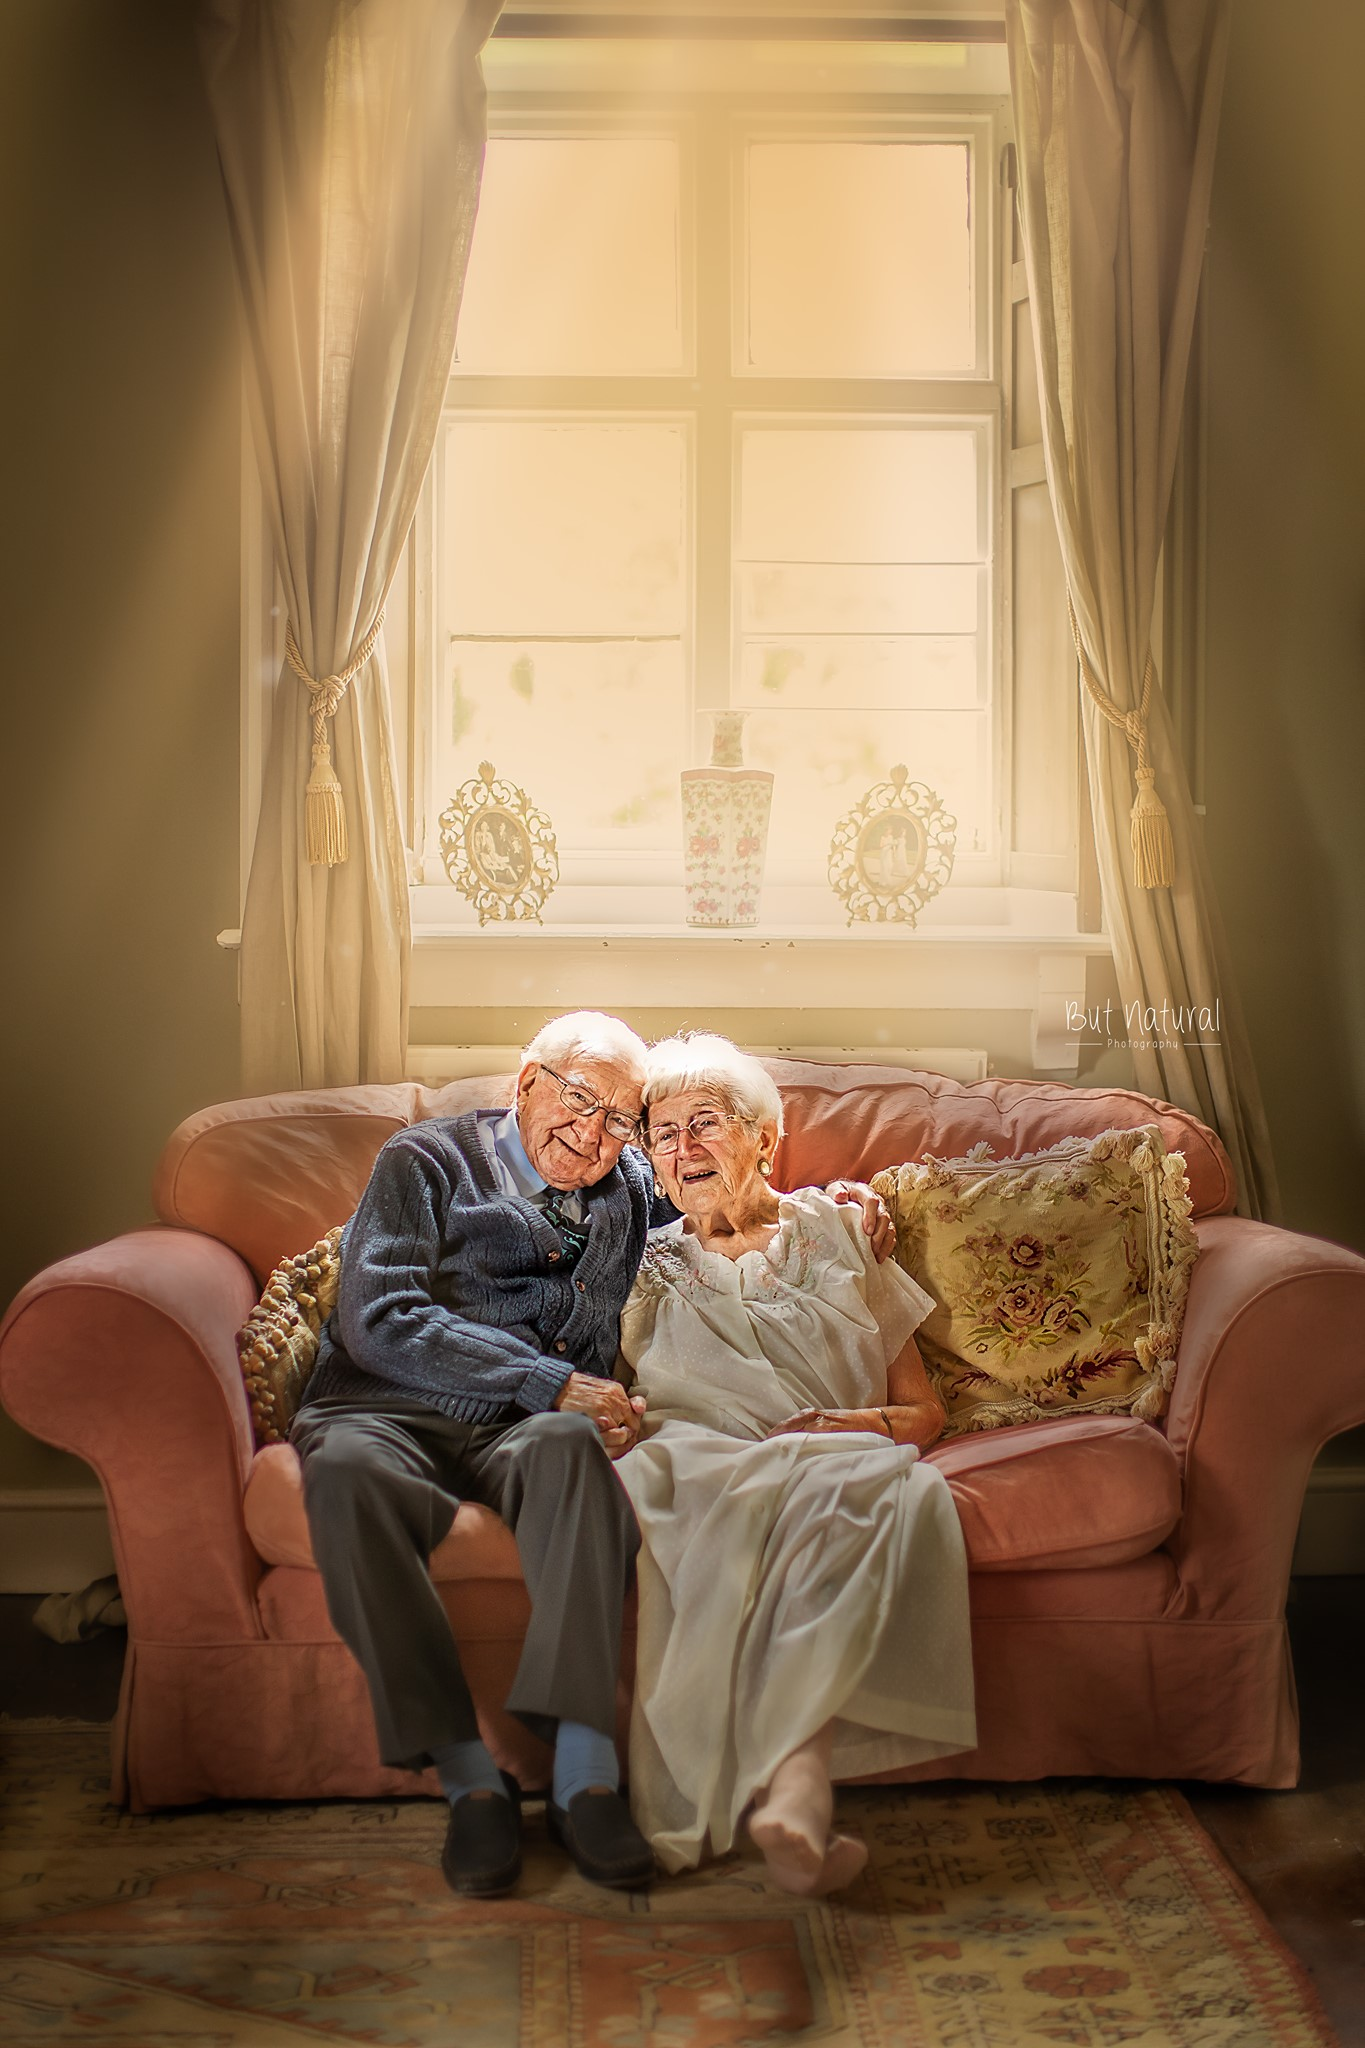 Elderly Photoshoot by Sujata Setia - But Natural Photography